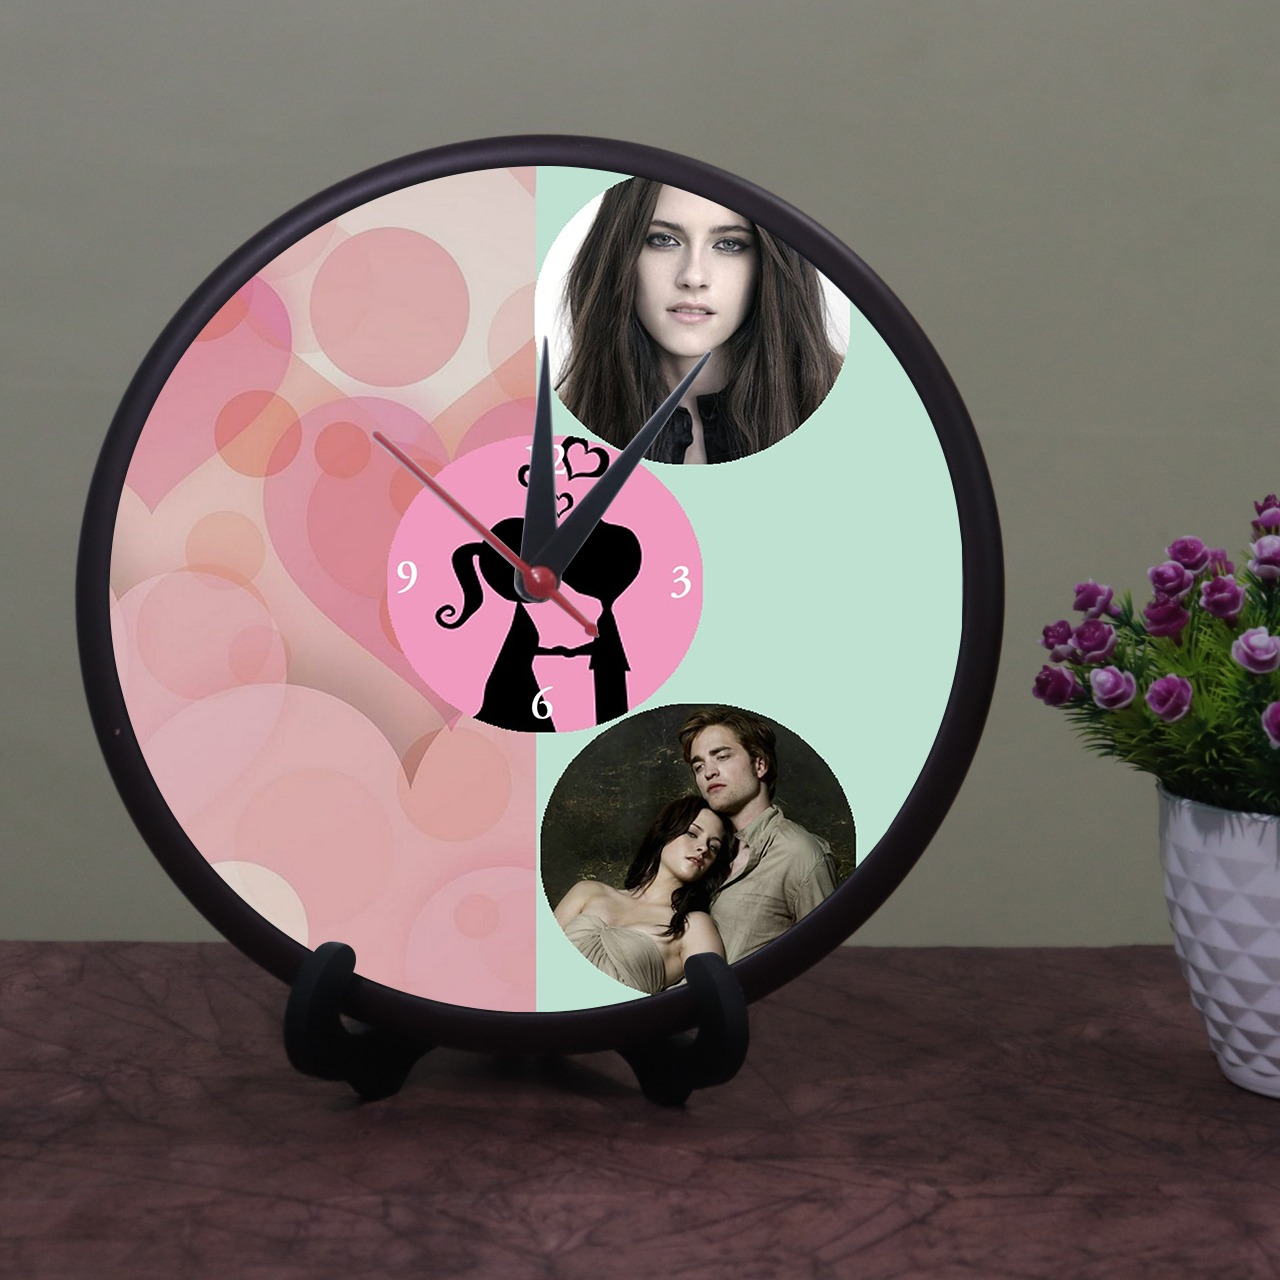 Personalized Round Shaped Clock